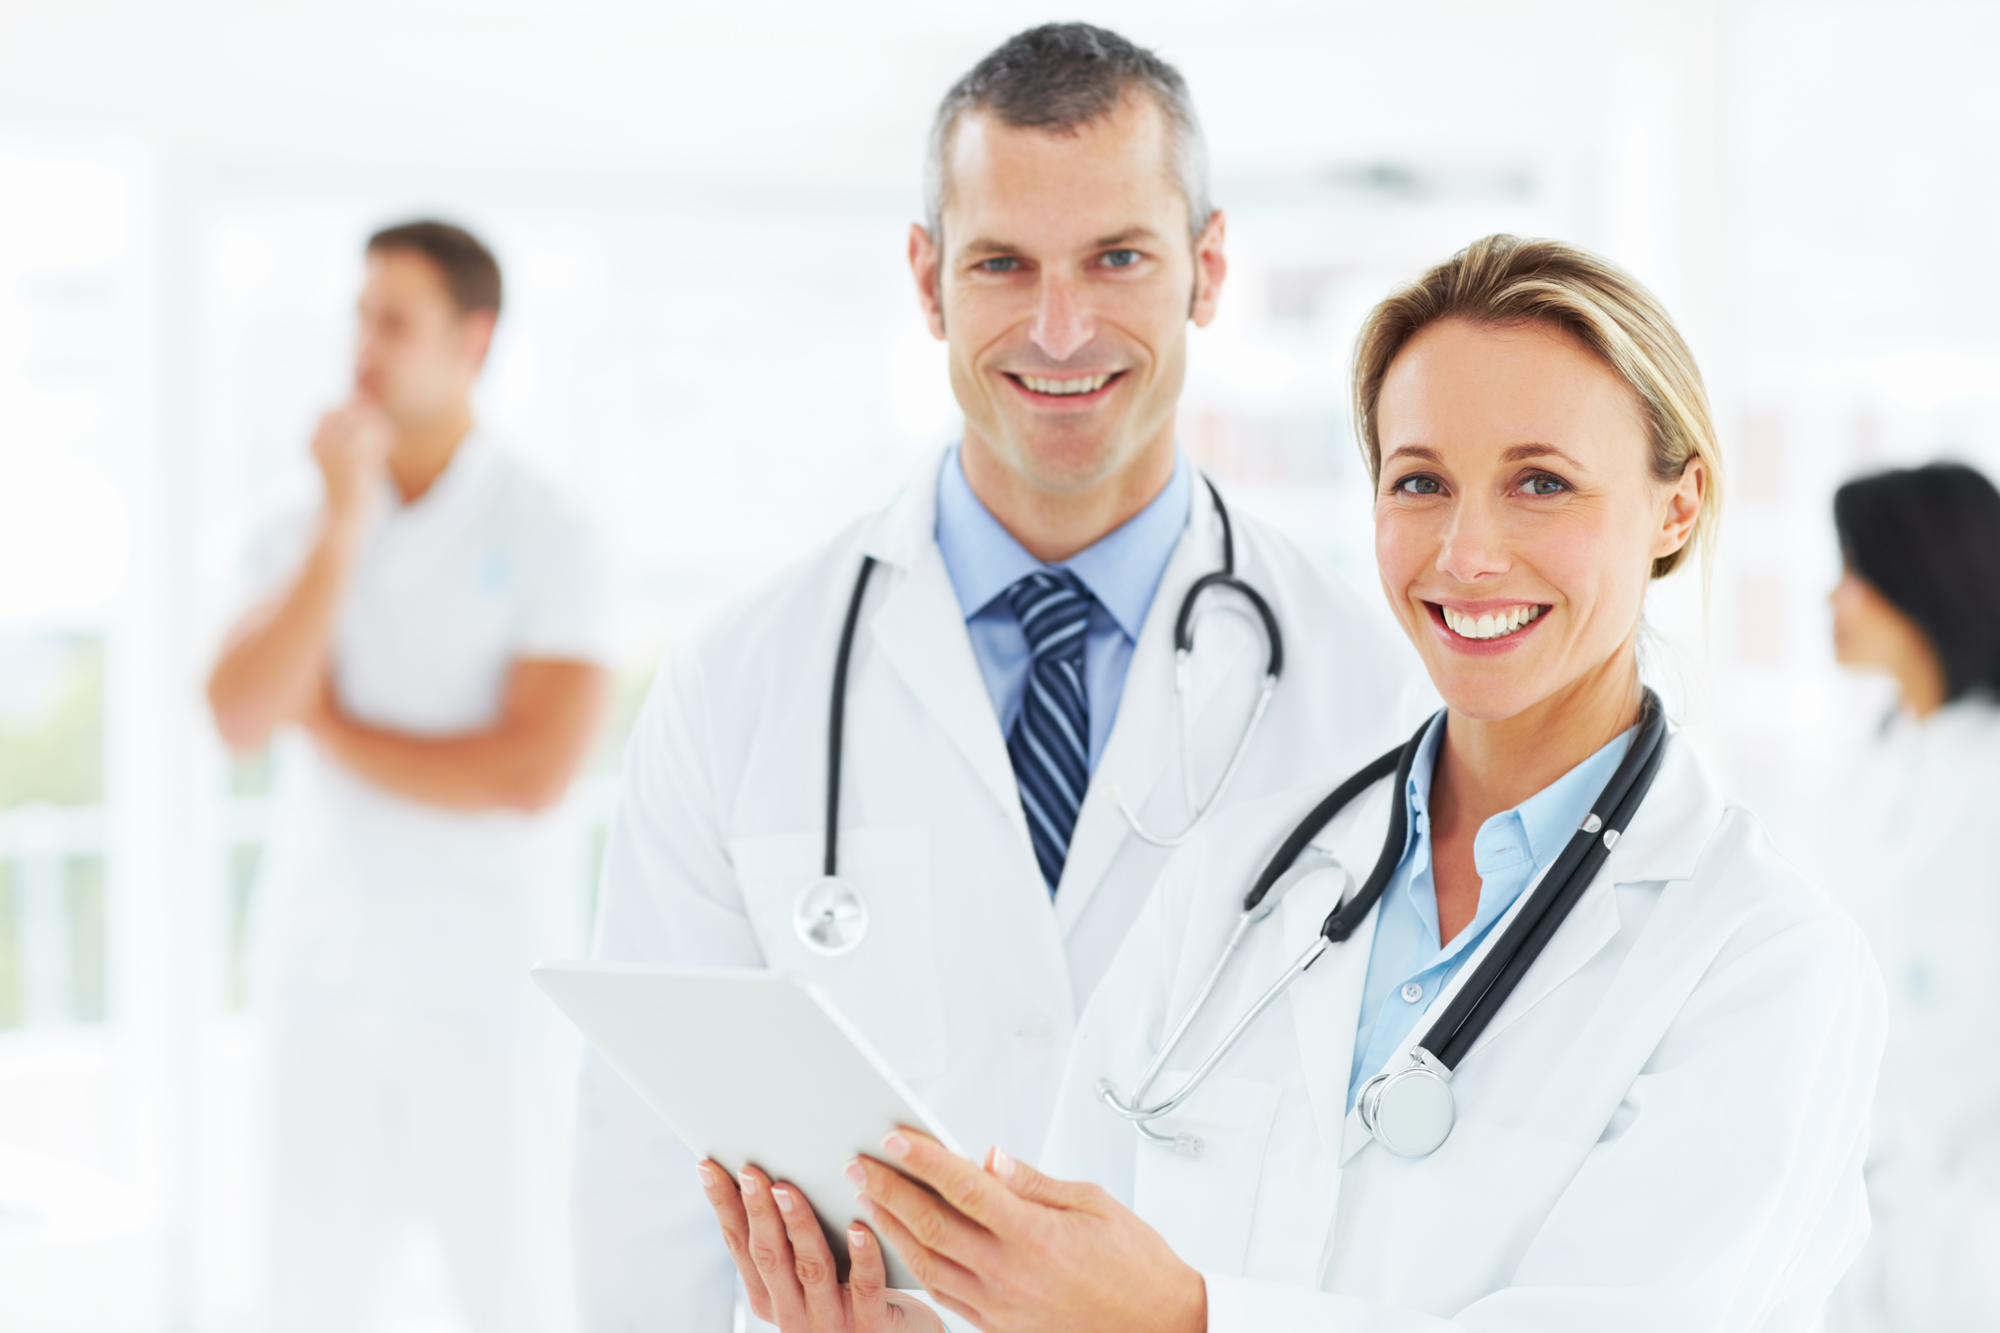 5 Insights into Private Practice Physicians